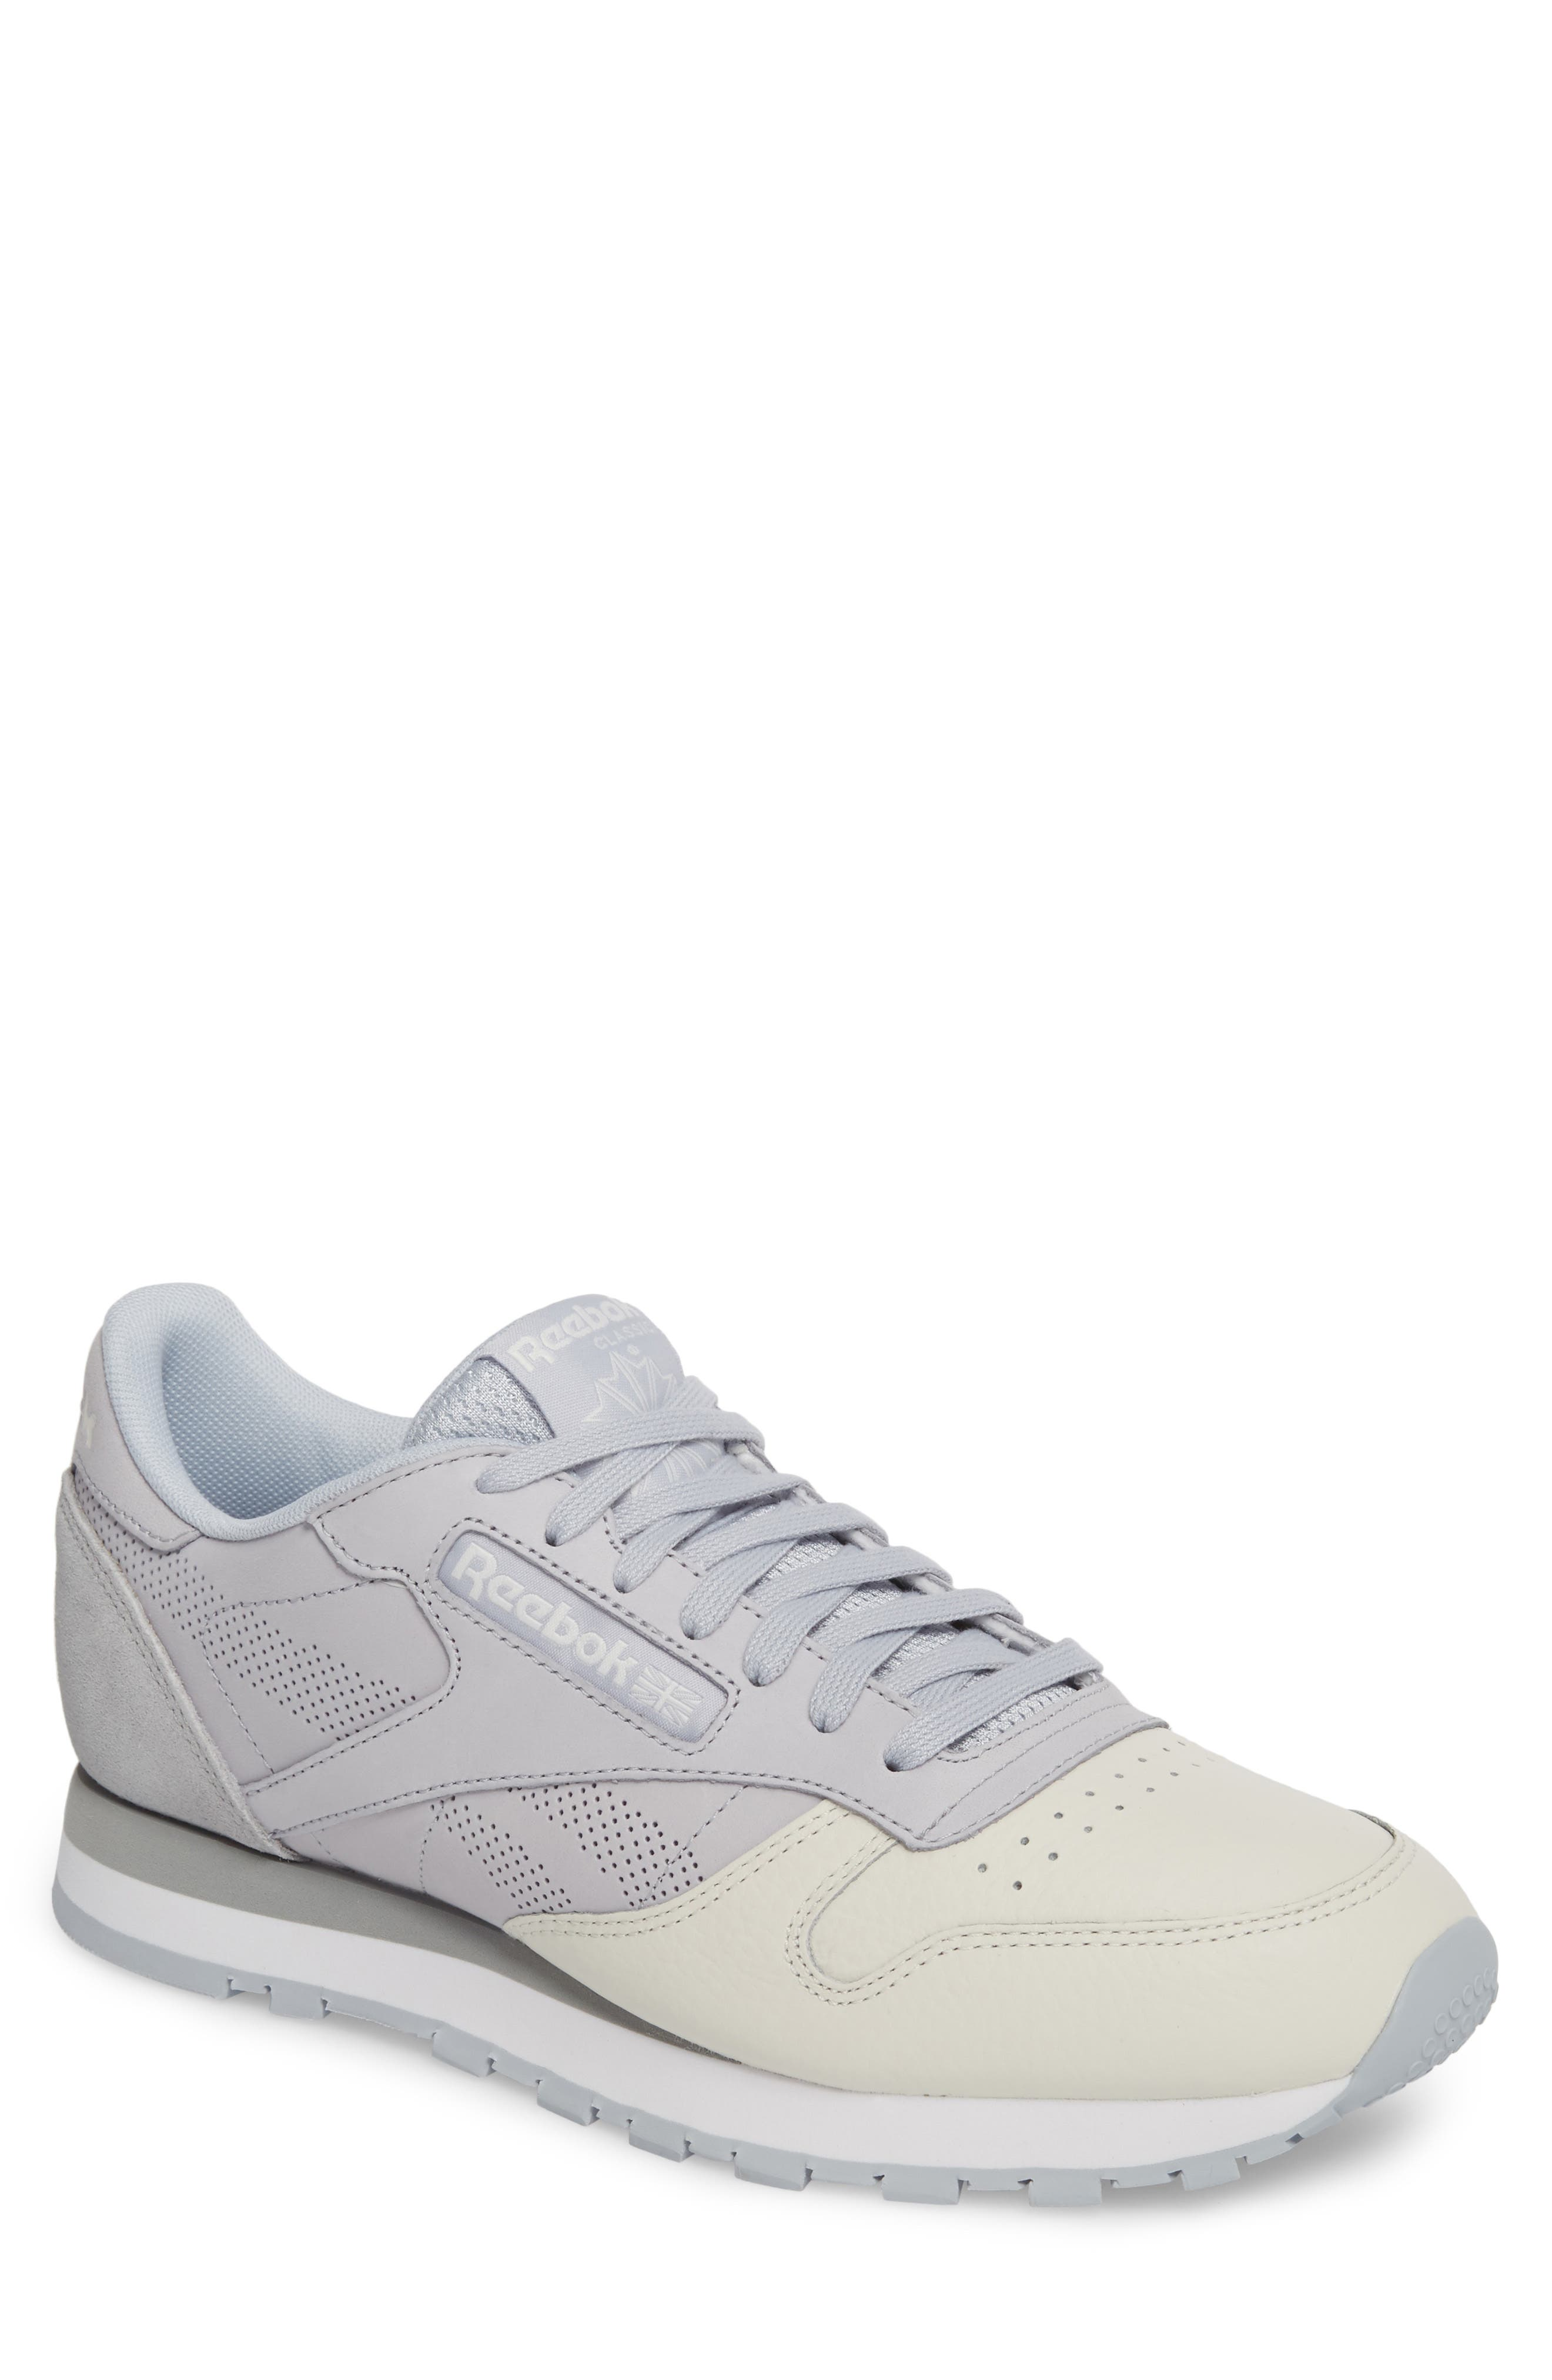 Classic Leather UE Sneaker,                             Main thumbnail 1, color,                             020